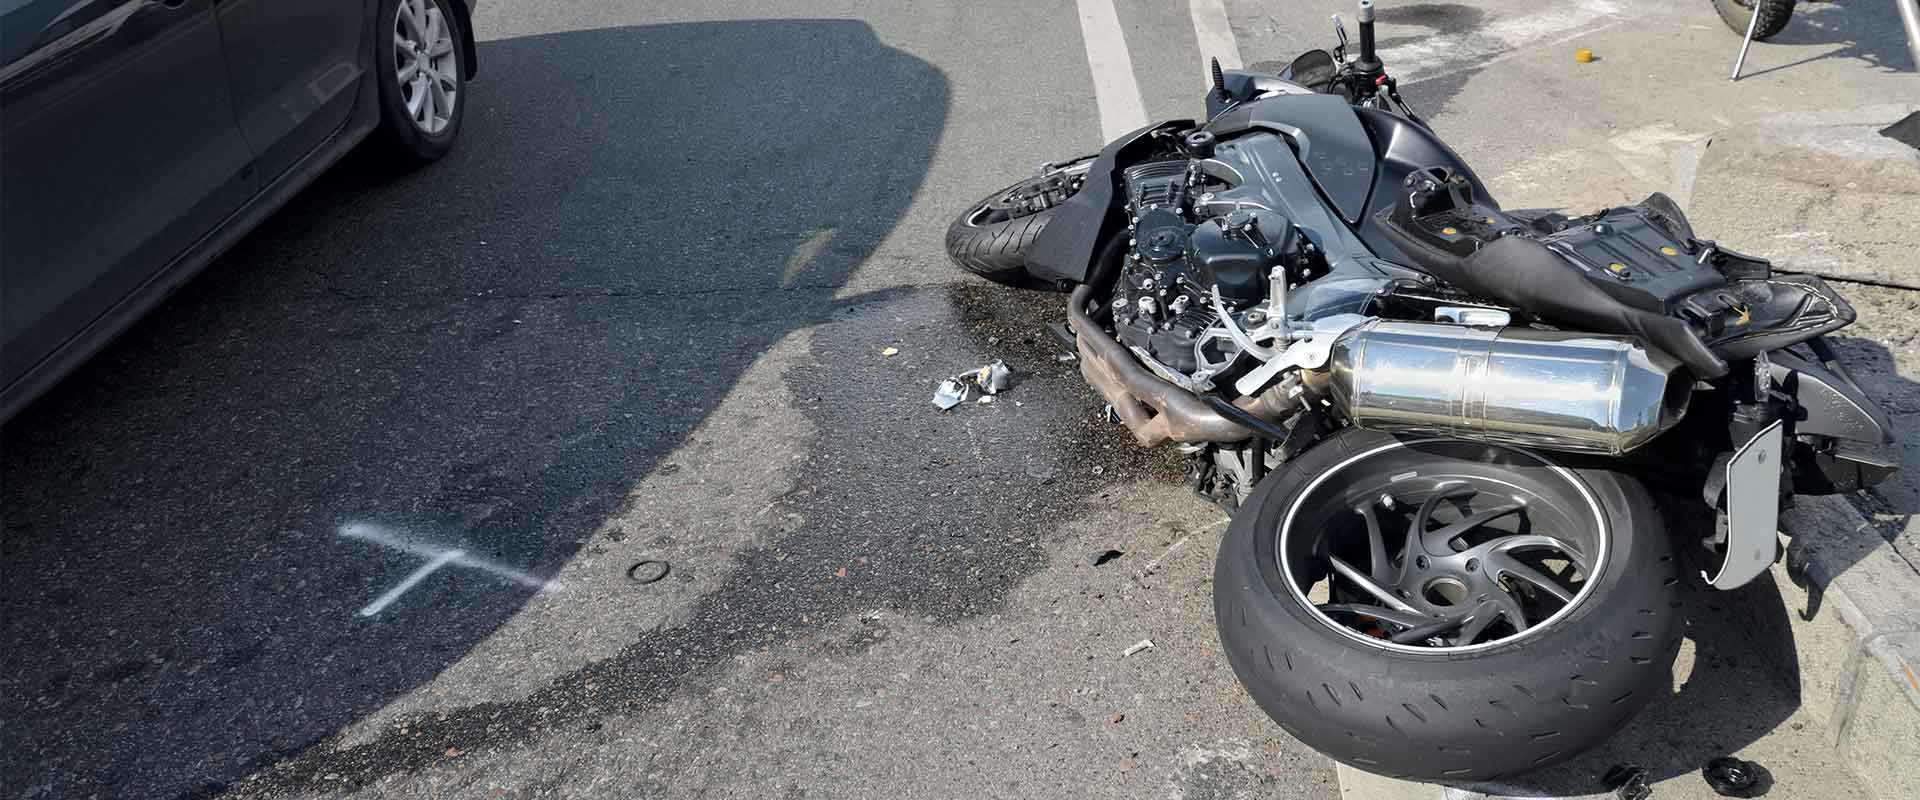 motorcycle accident lawyer in idaho